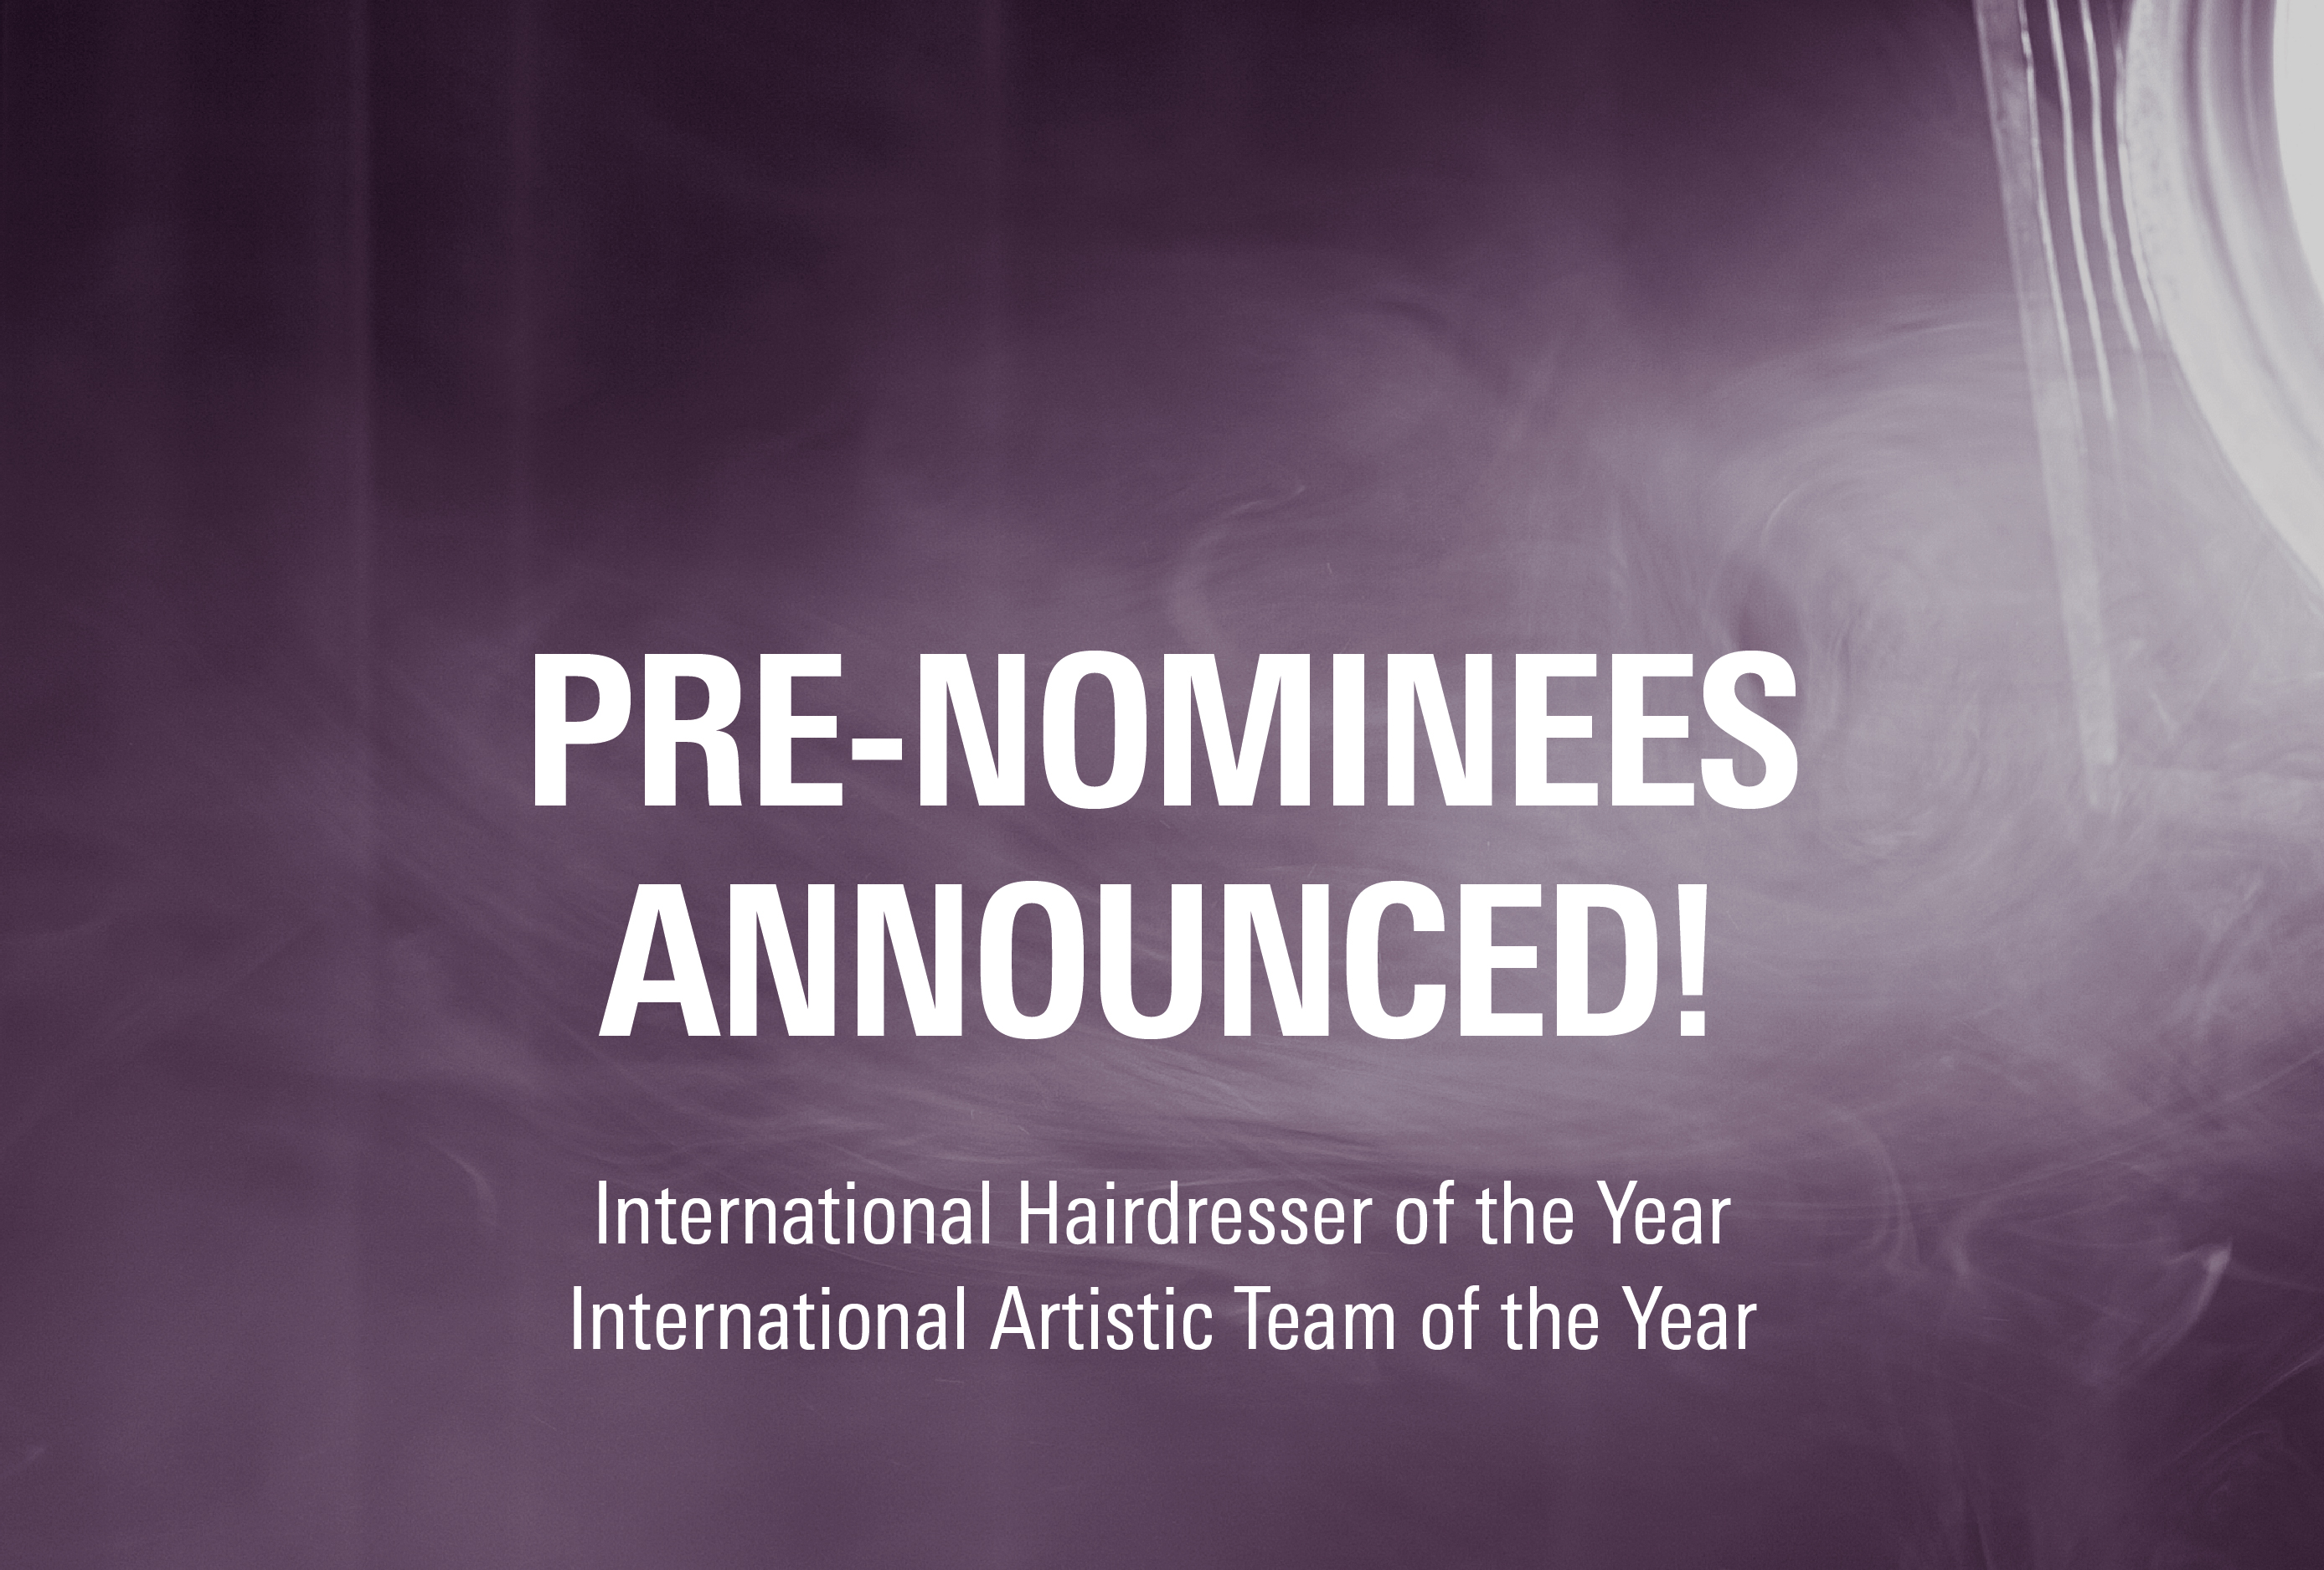 Pre-nominees announced!